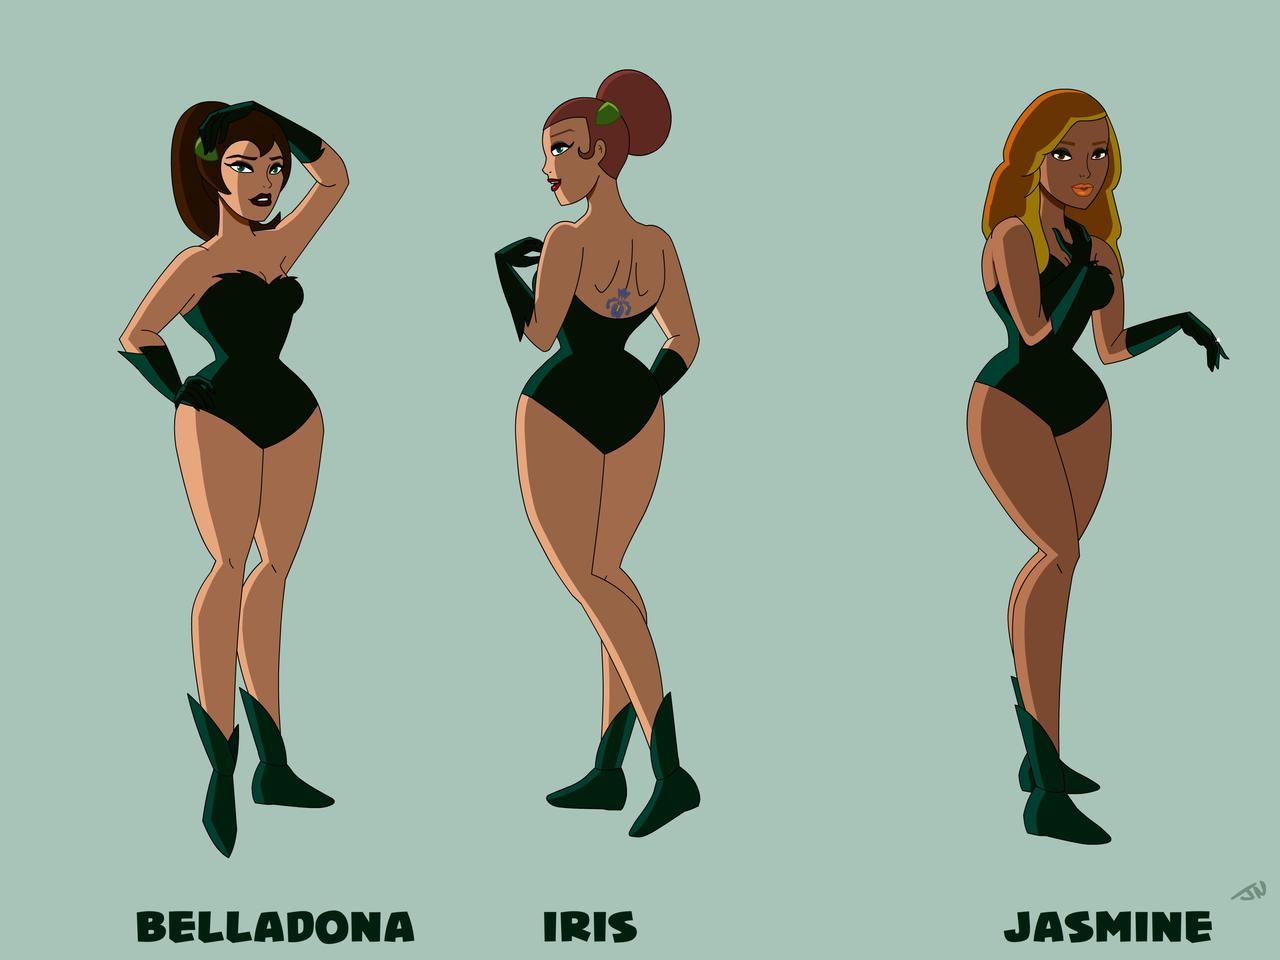 belladonna__iris__and_jasmine_by_jettmanas_dd19k29-fullview.jpg